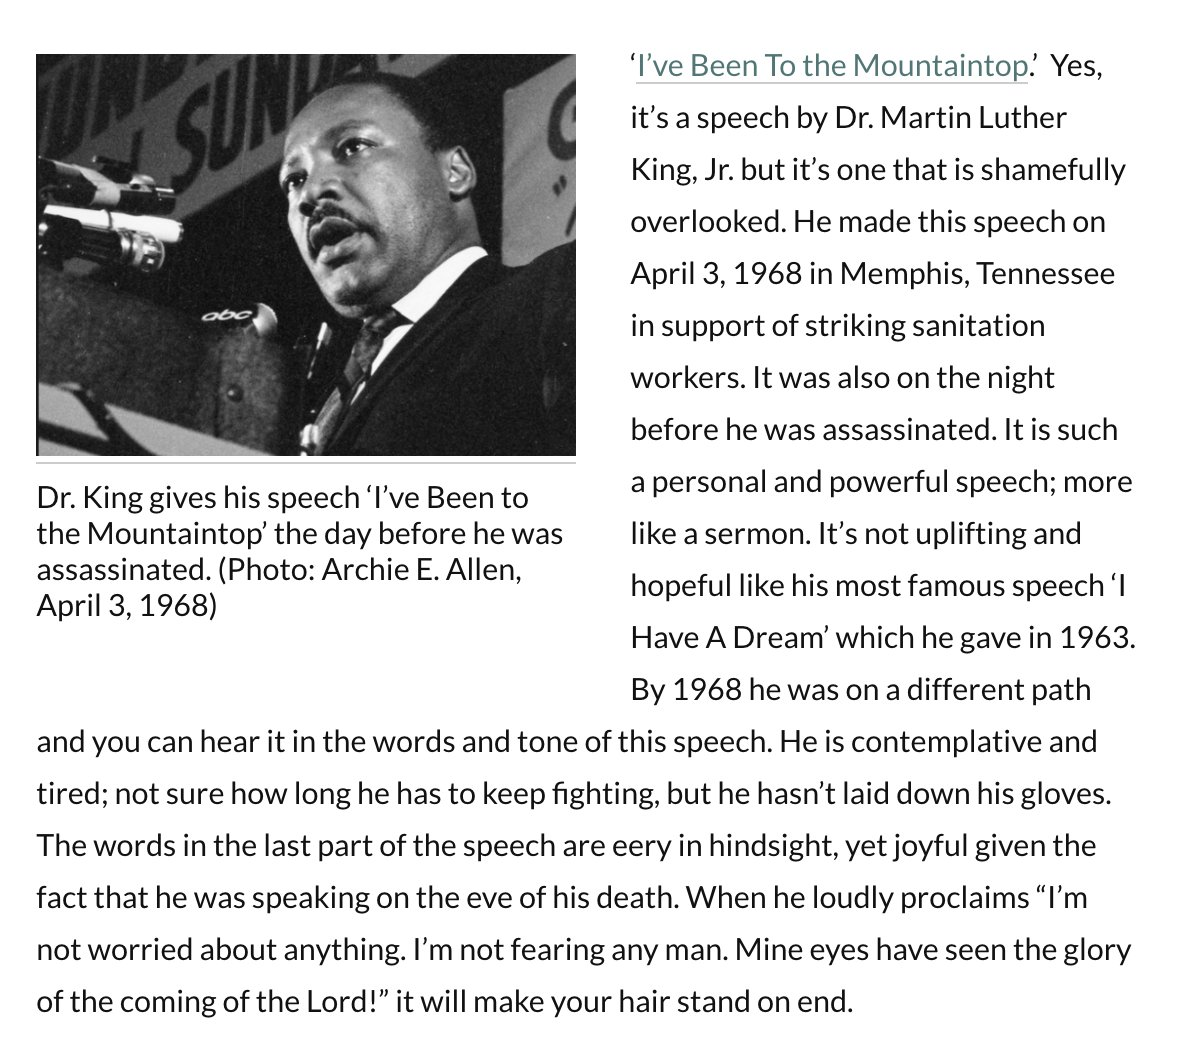 #MLKDay: 'I've Been to The Mountaintop' *is* Dr. King's best speech (audio/text of speech ). I wrote about it as part of a 'Black History Month' blog post